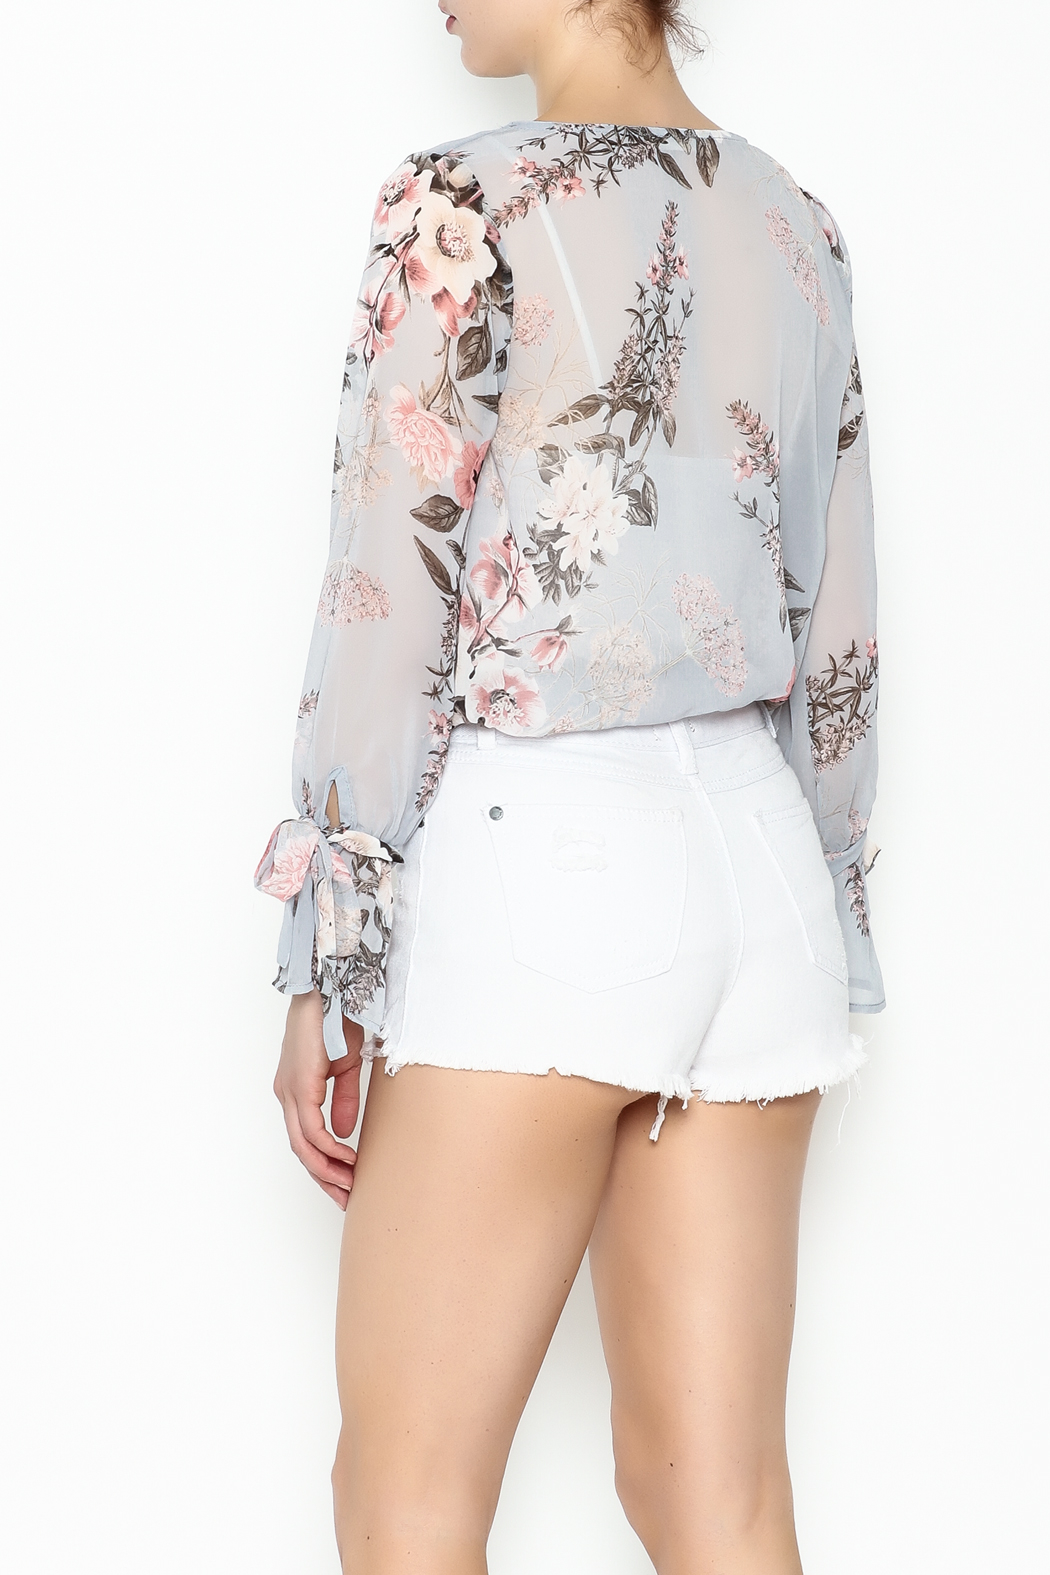 jella c Floral Print Top - Back Cropped Image